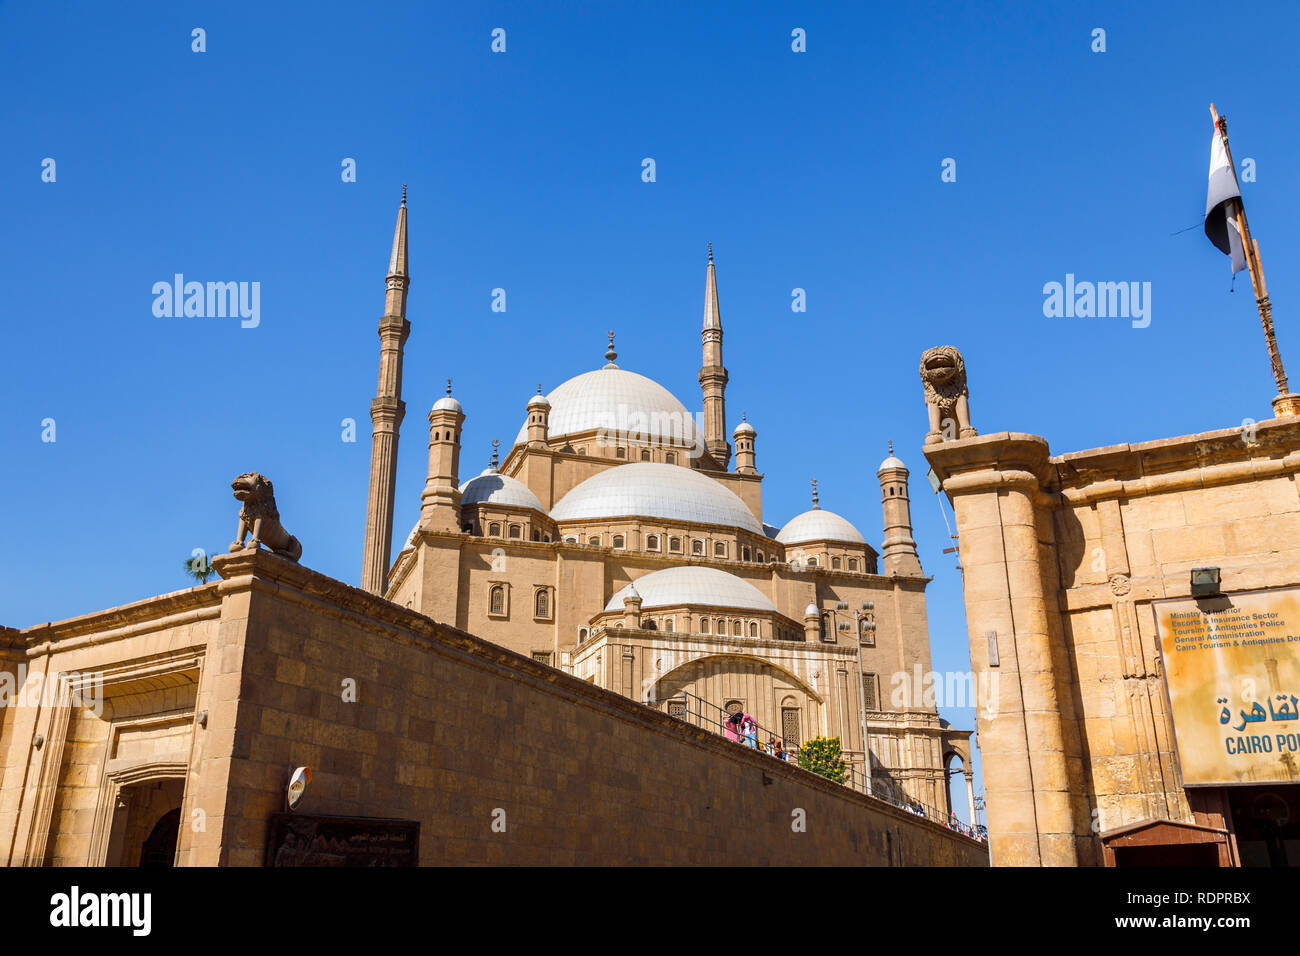 View of the domes and minarets of the Great Mosque of Muhammad Ali Pasha in the Saladin Citadel, a medieval Islamic fortification in  Cairo, Egypt Stock Photo